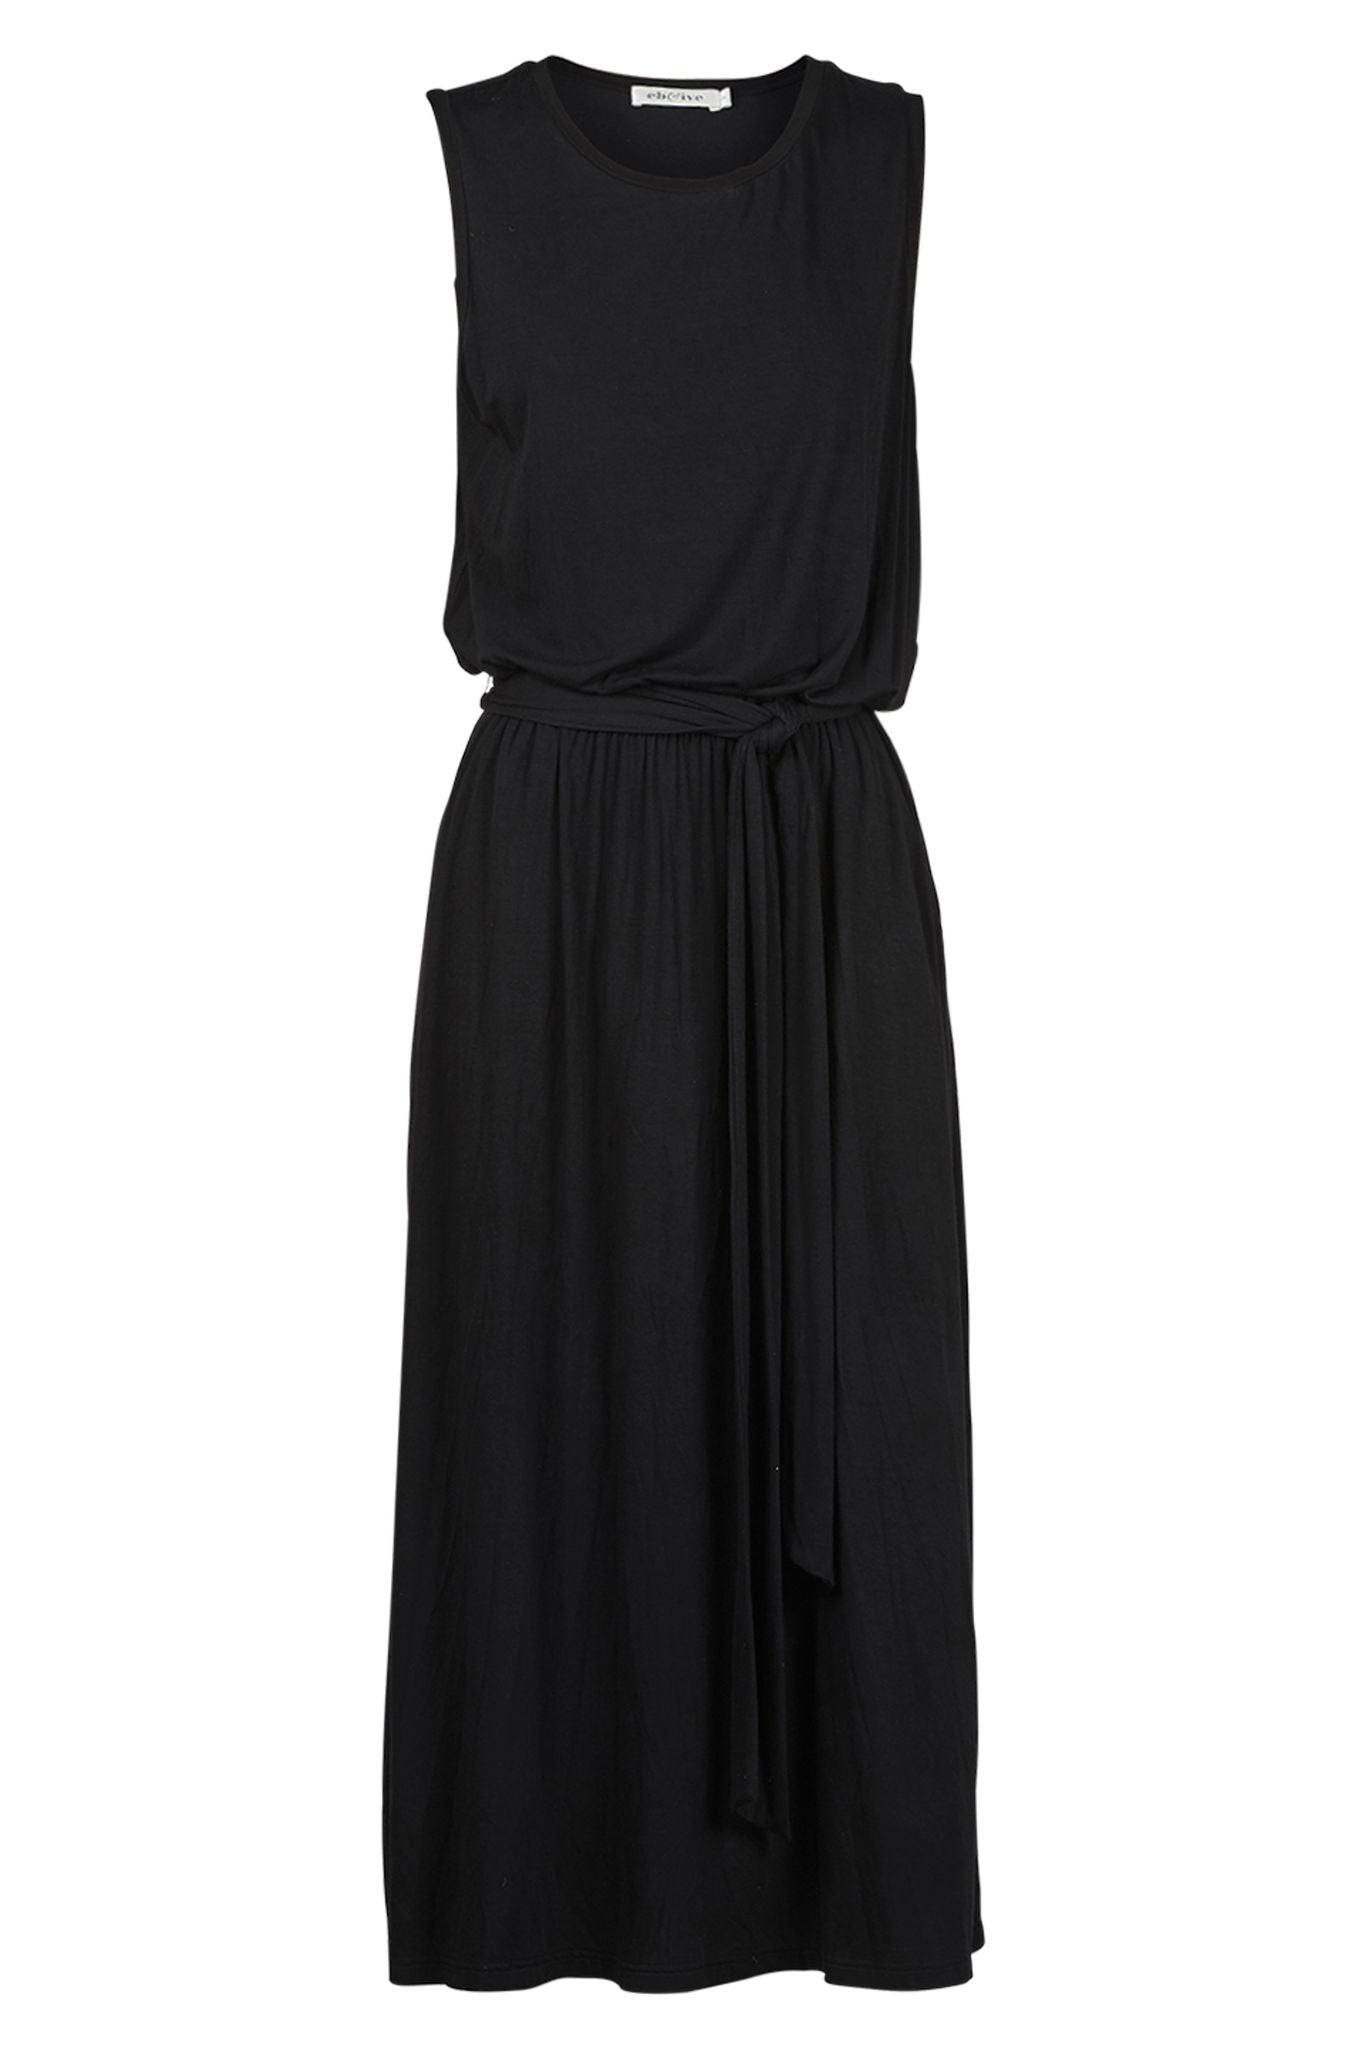 eb&ive - Sorella Waisted Dress